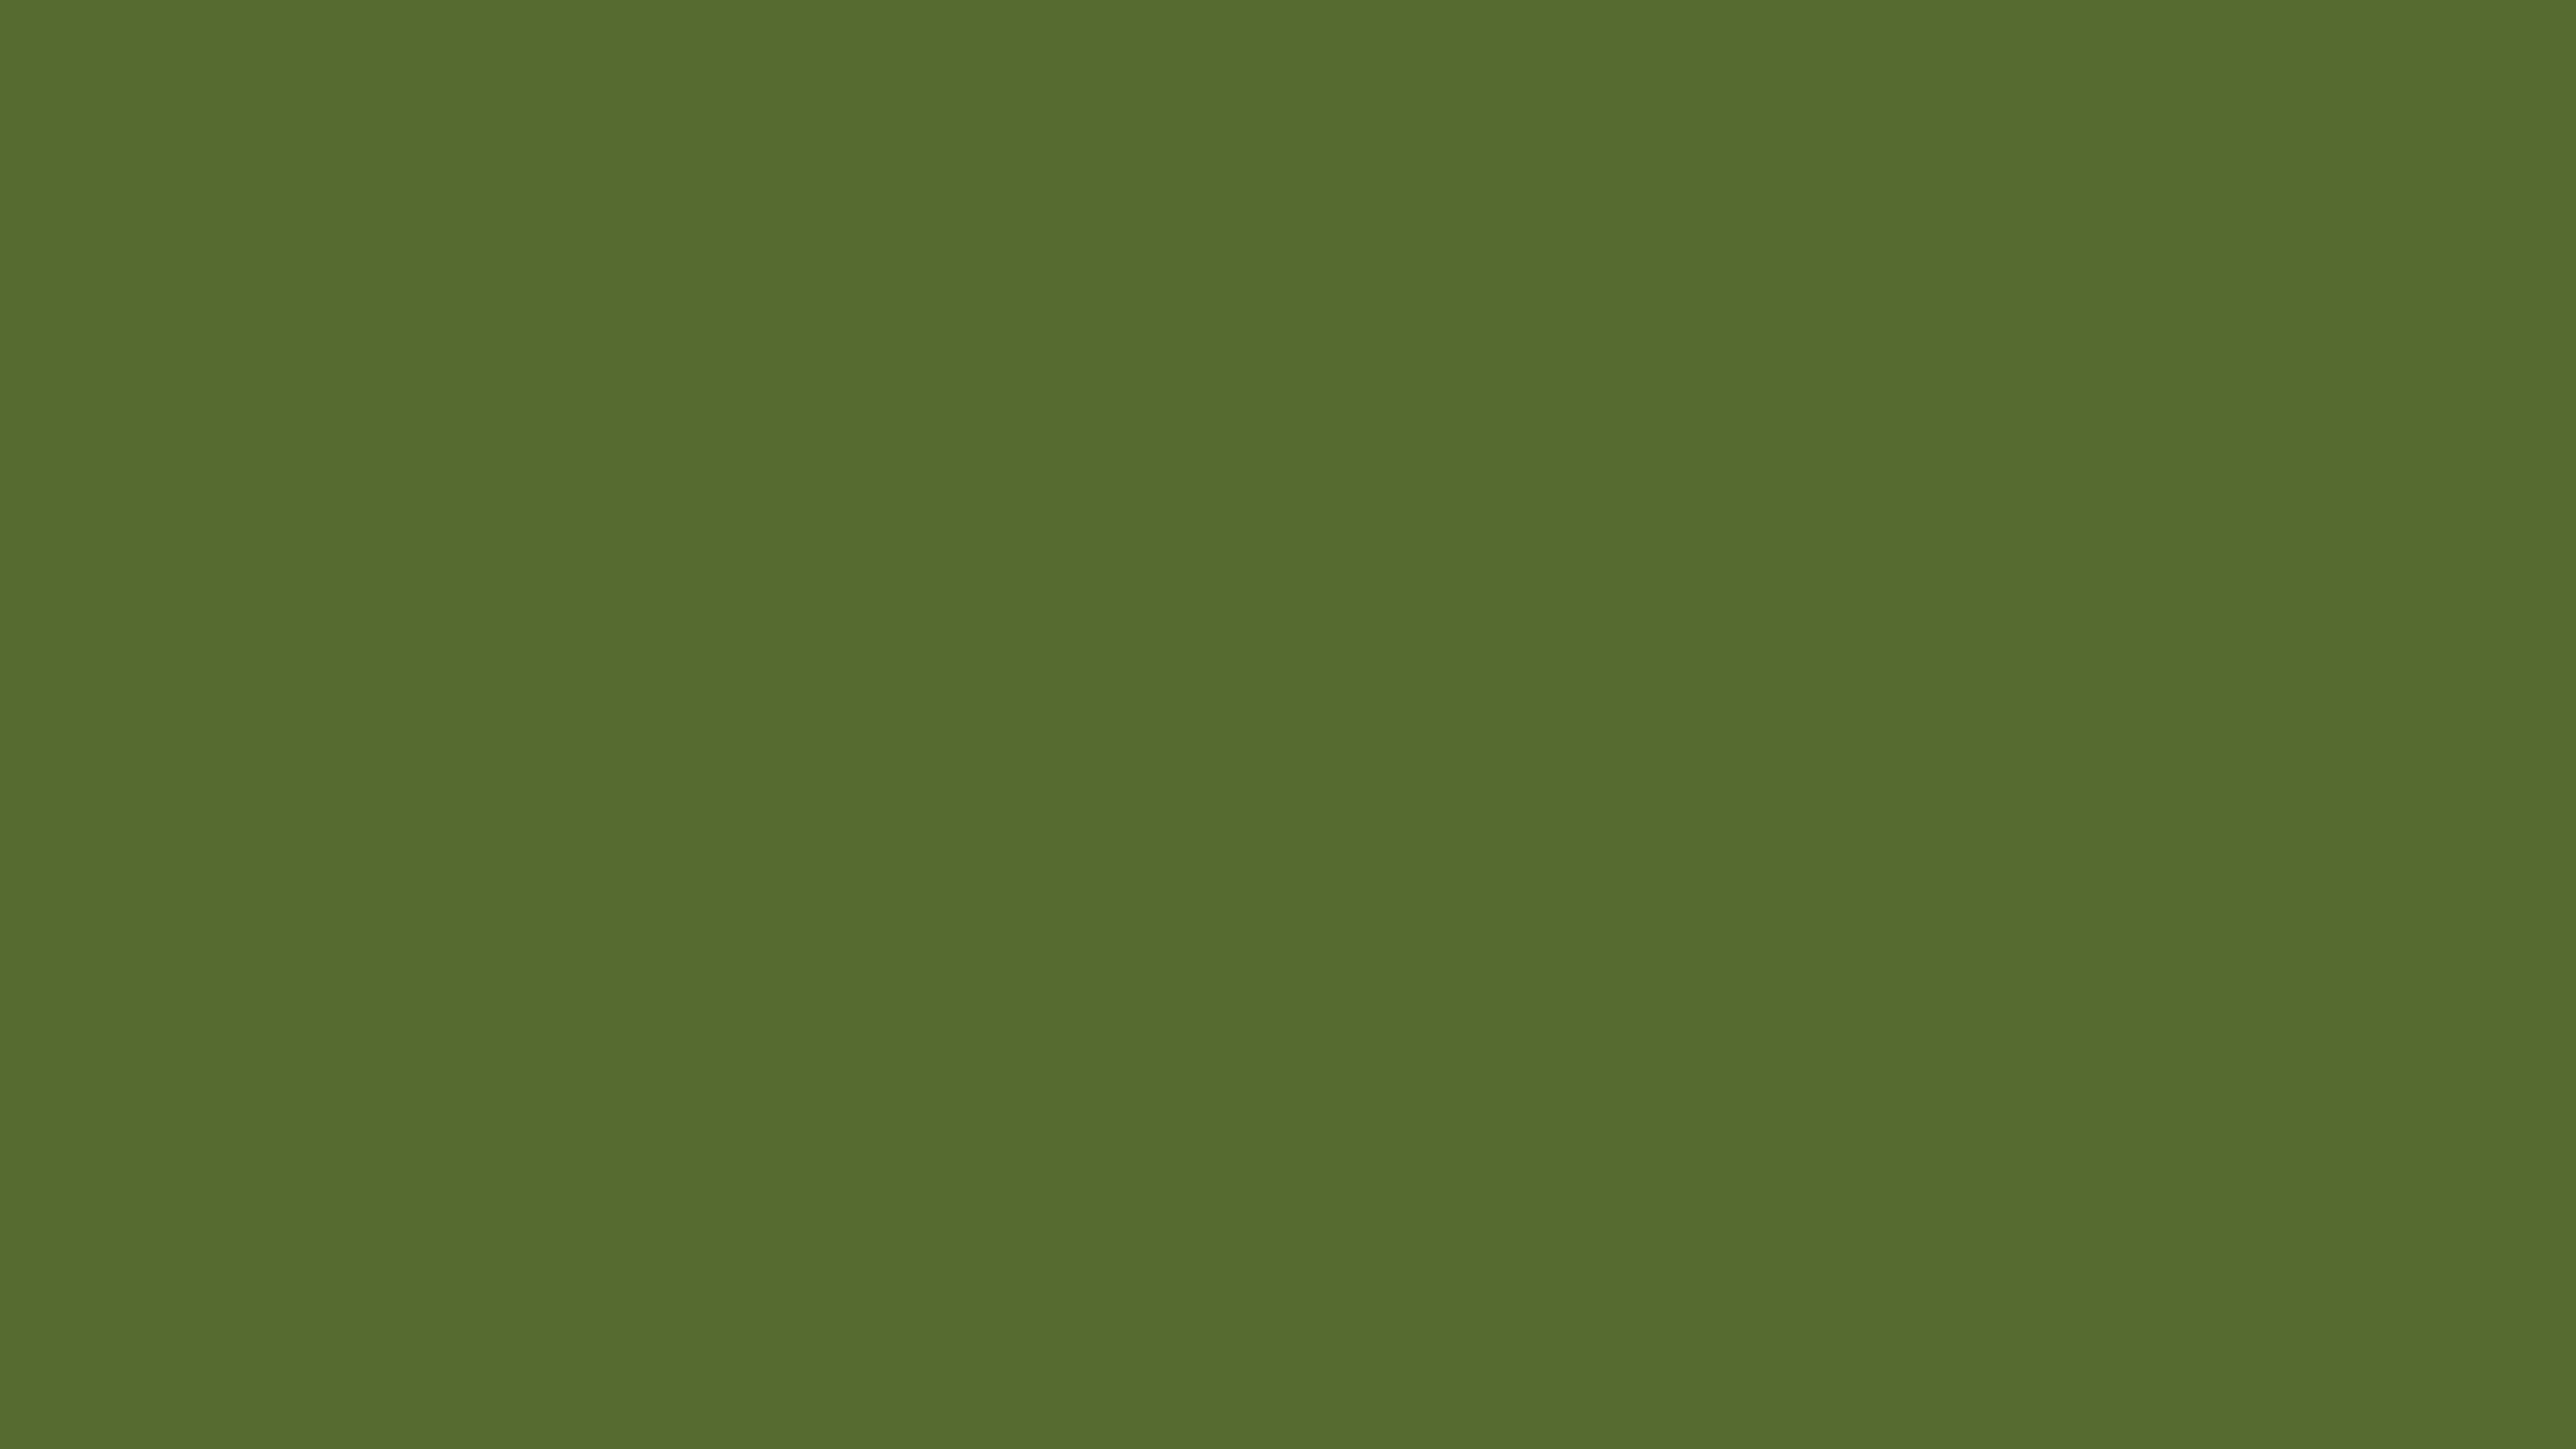 4096x2304 Dark Olive Green Solid Color Background